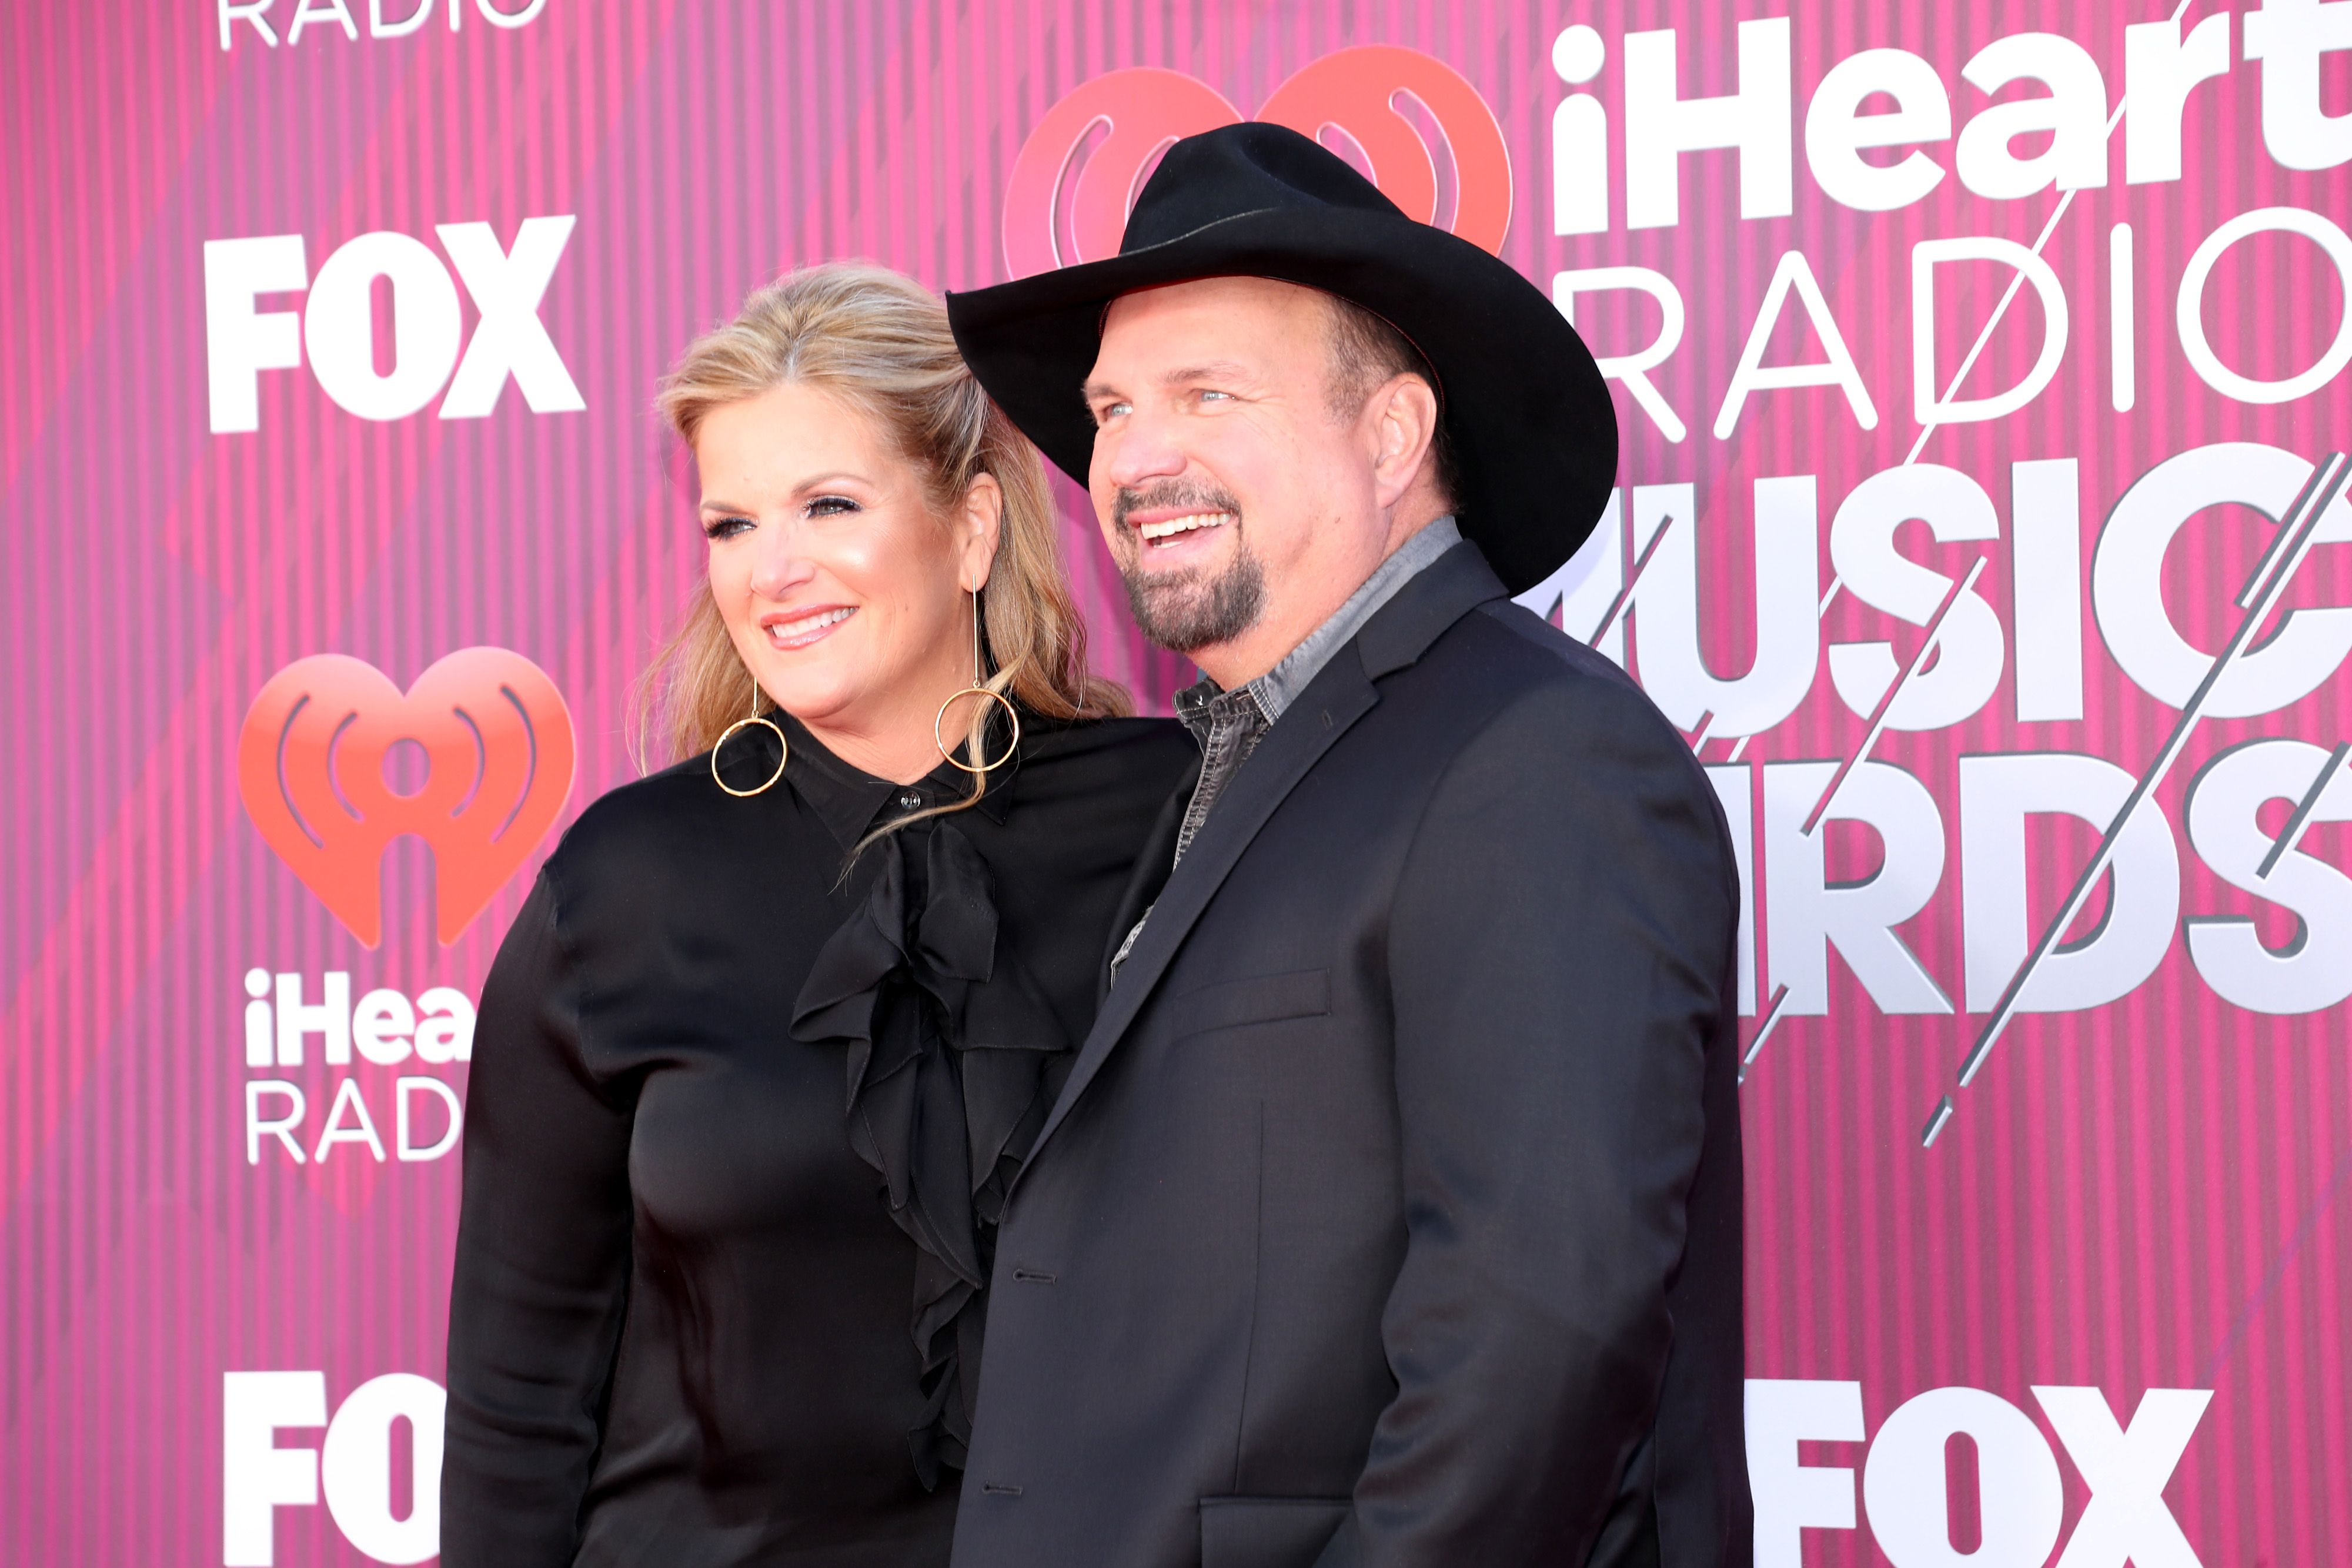 Trisha Yearwood and Garth Brooks at the iHeartRadio Music Awards which broadcasted live on FOX at Microsoft Theater on March 14, 2019 | Photo: Getty Images